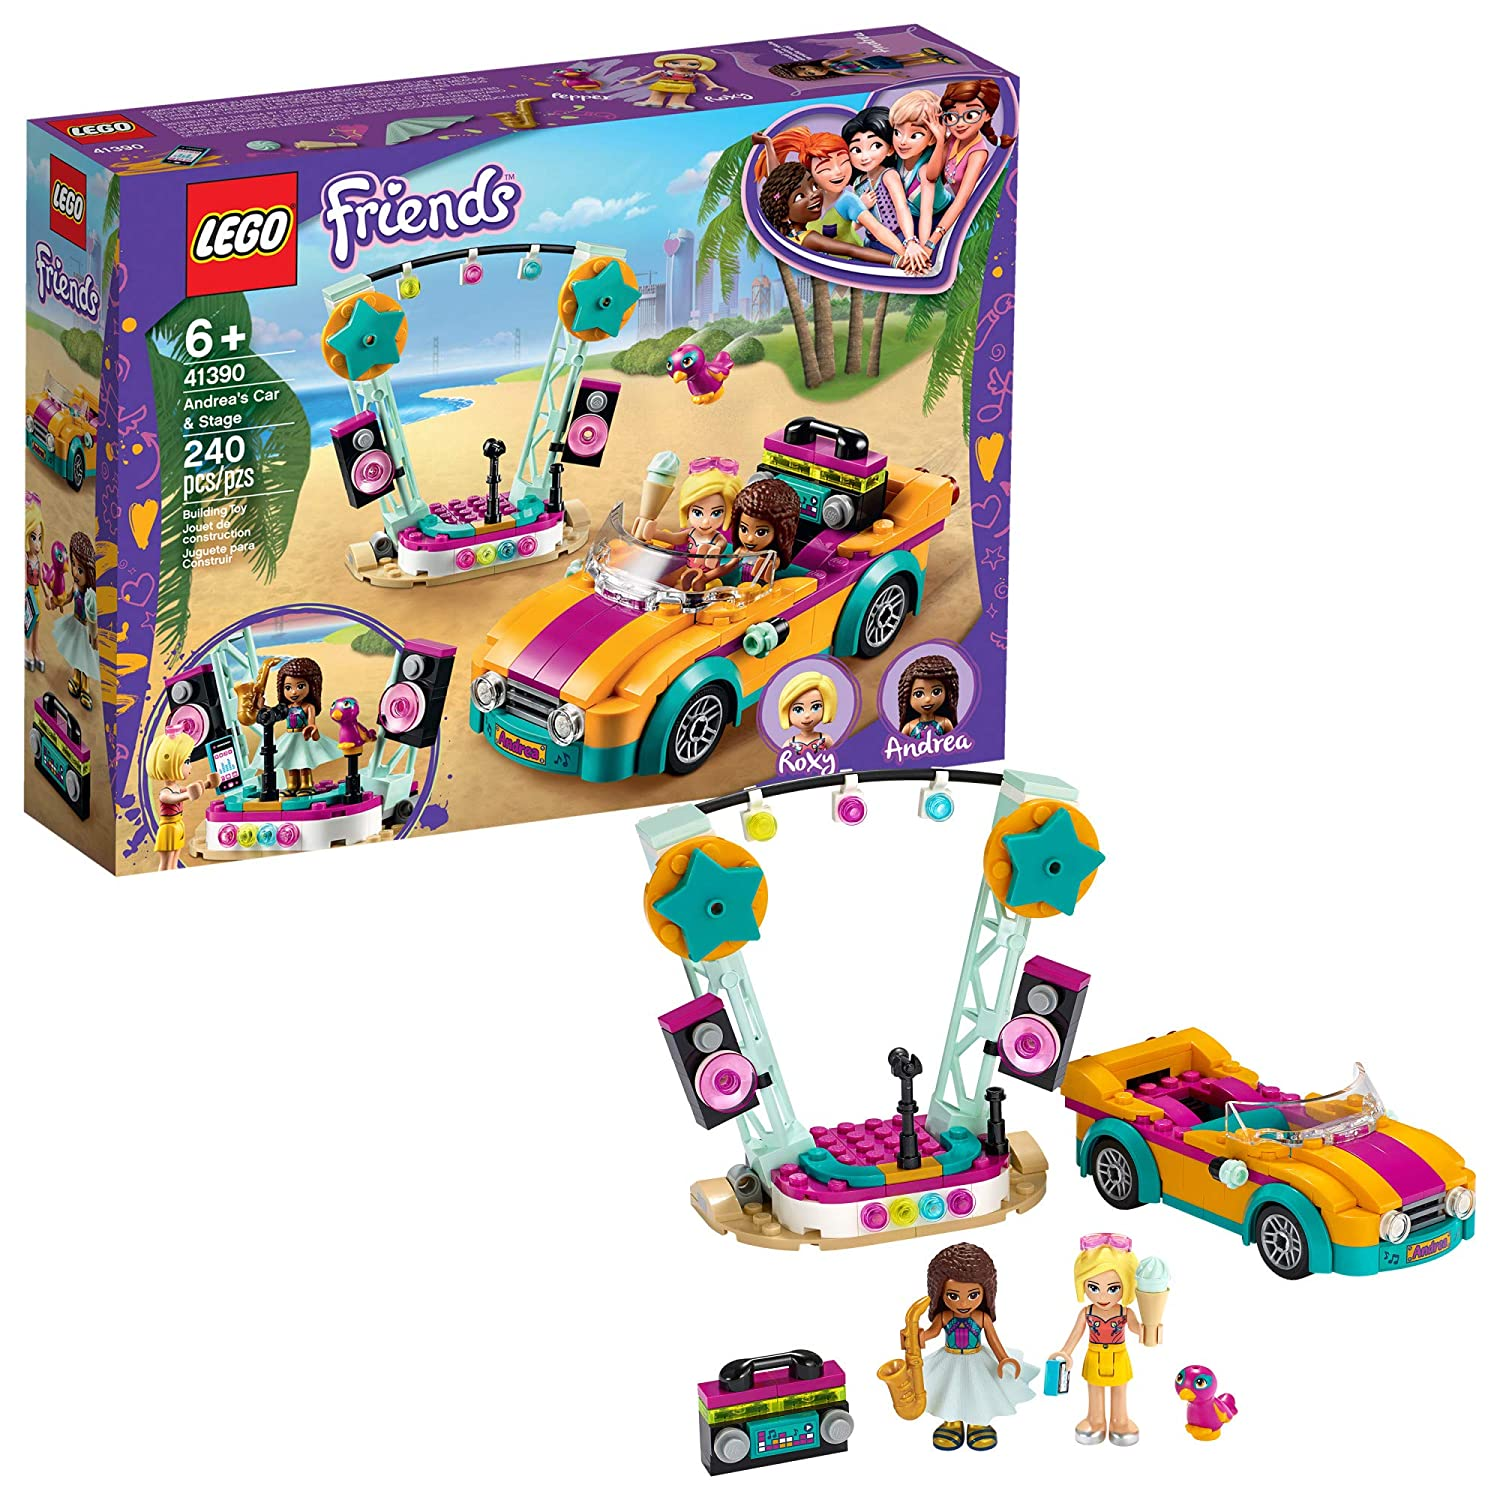 LEGO Friends Andrea's Car & Stage Playset 41390 Building Kit, Includes a Toy Car and a Toy Bird, New 2020 (240 Pieces)